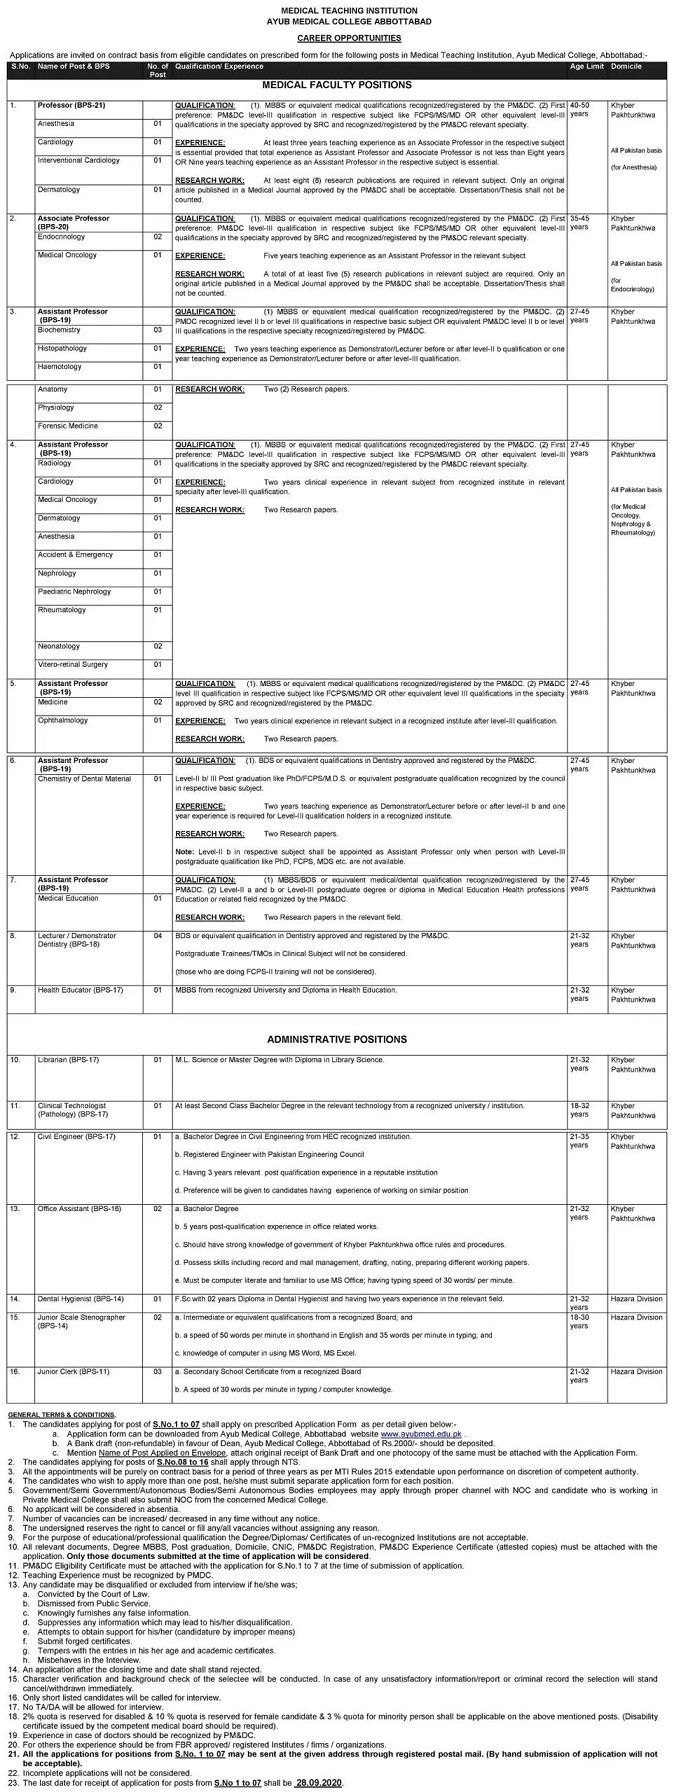 Ayub Medical College Abbottabad Medical Teaching Institution Medical Administrative Posts NTS Roll No Slip